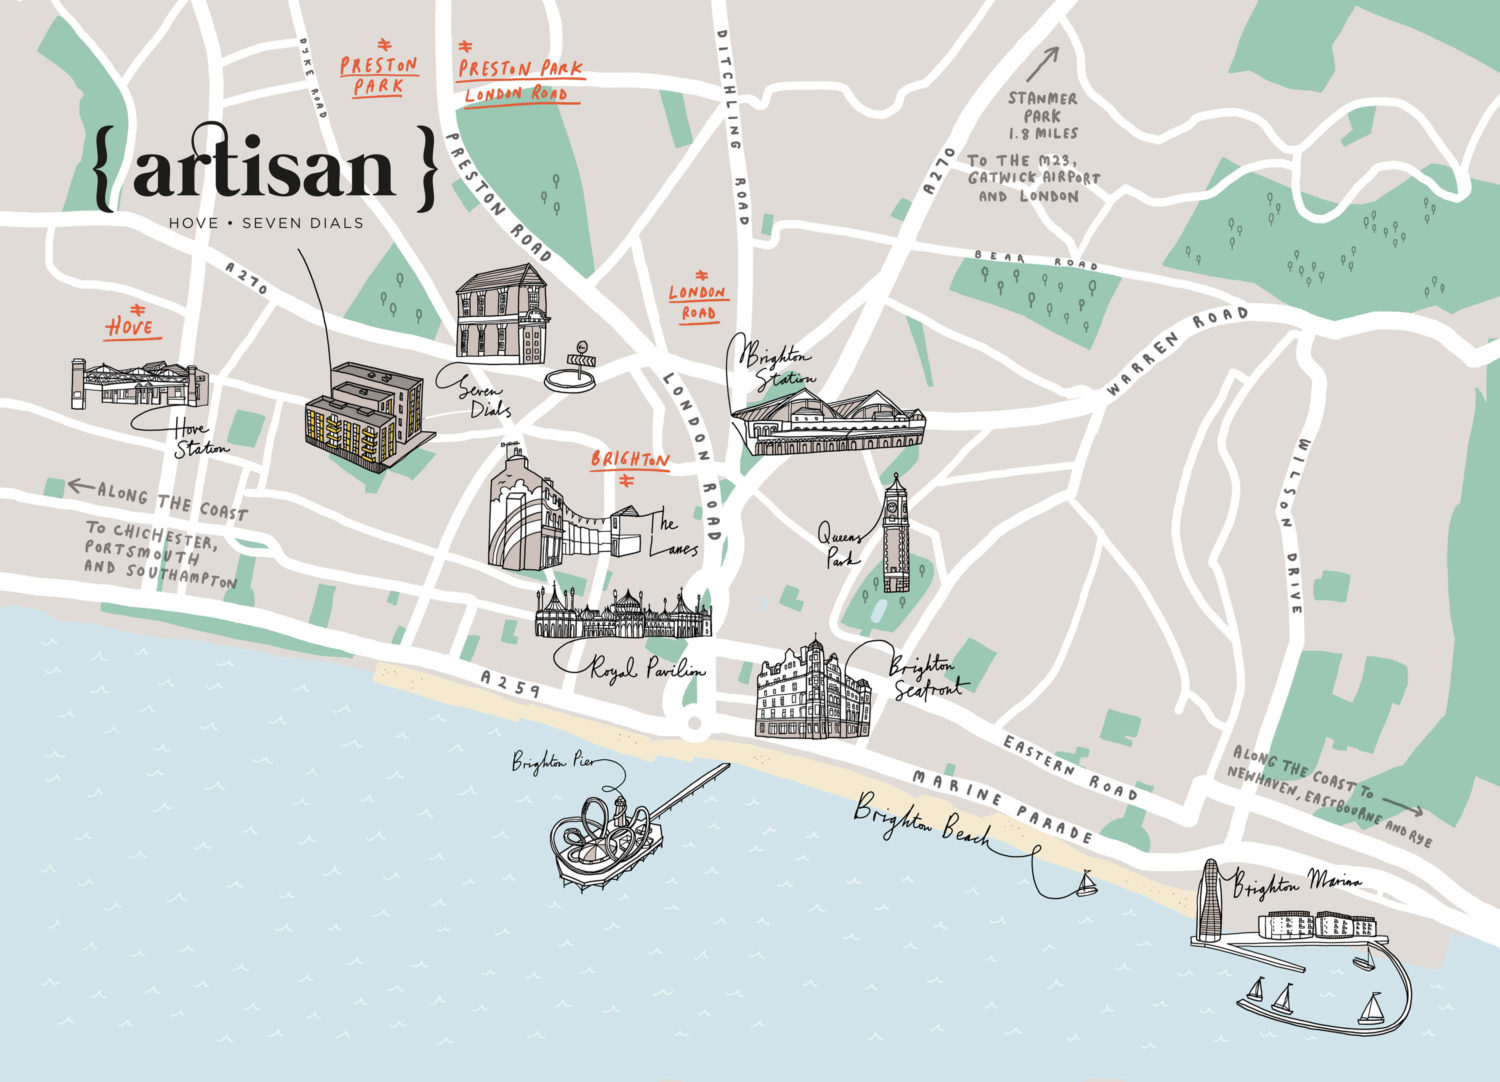 Artisan Hove Map illustration